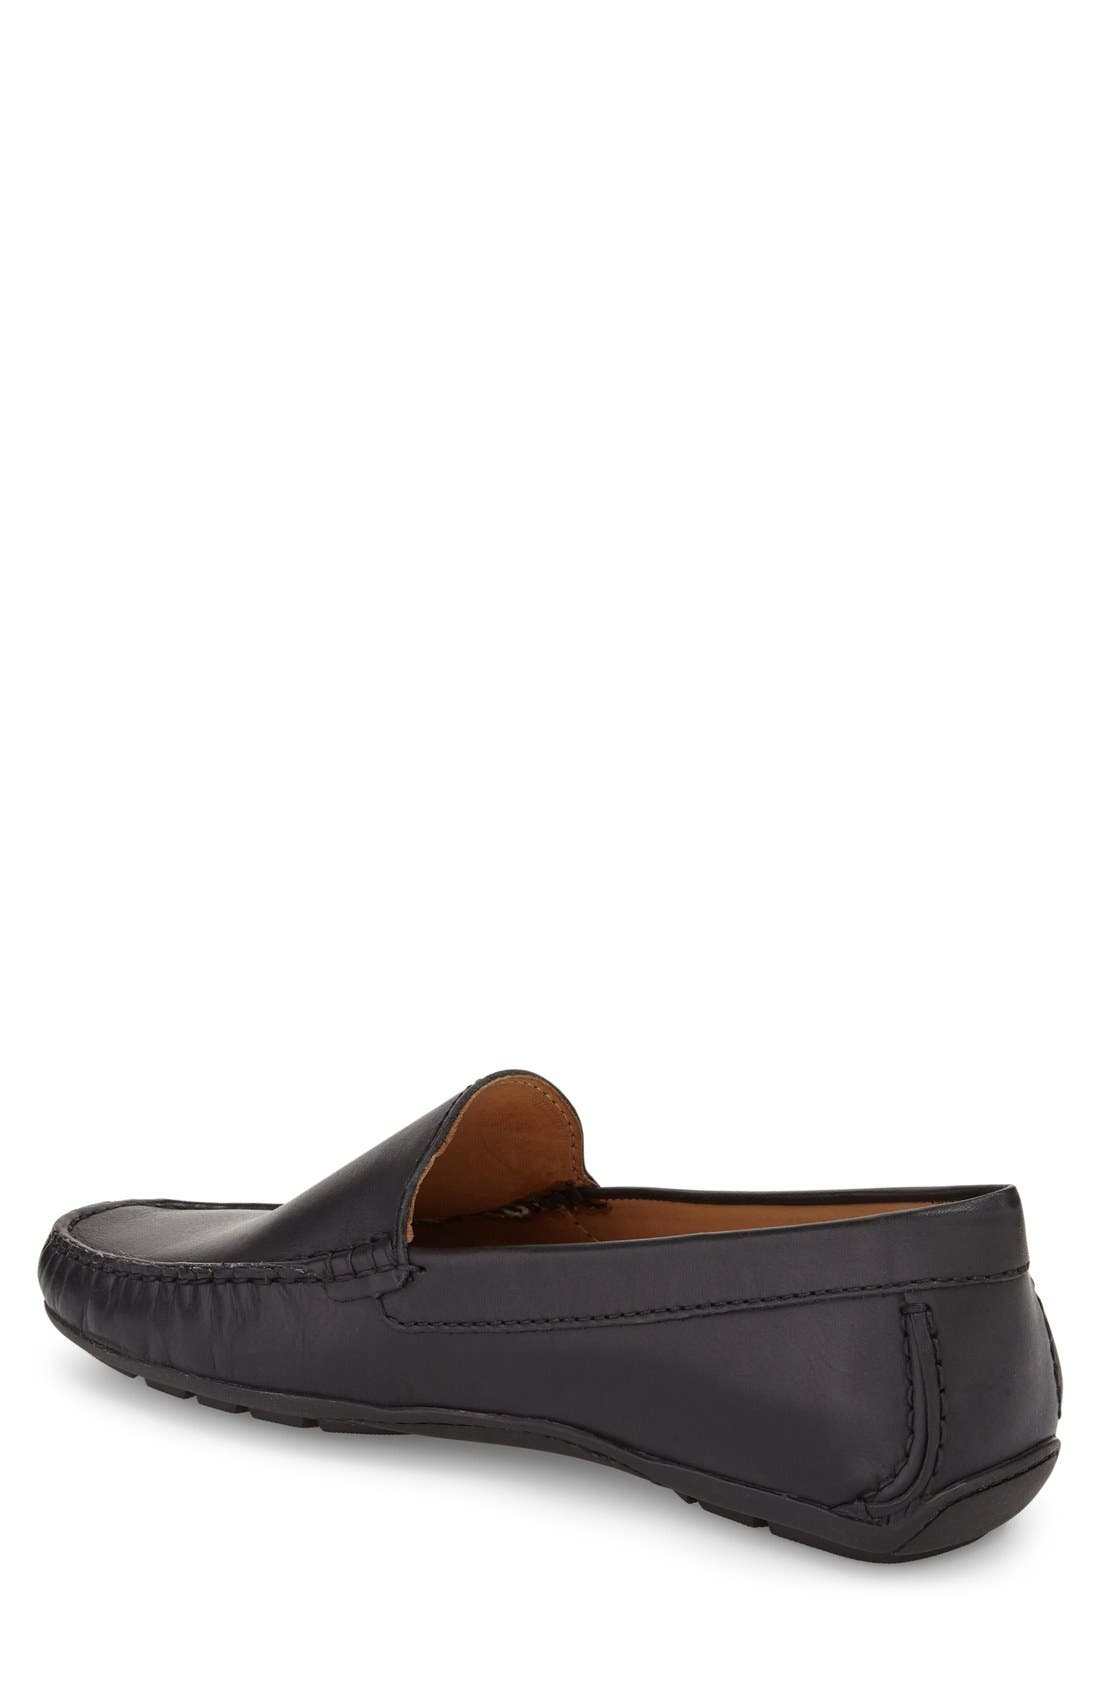 MARC JOSEPH NEW YORK, Venetian Driving Loafer, Alternate thumbnail 2, color, 001